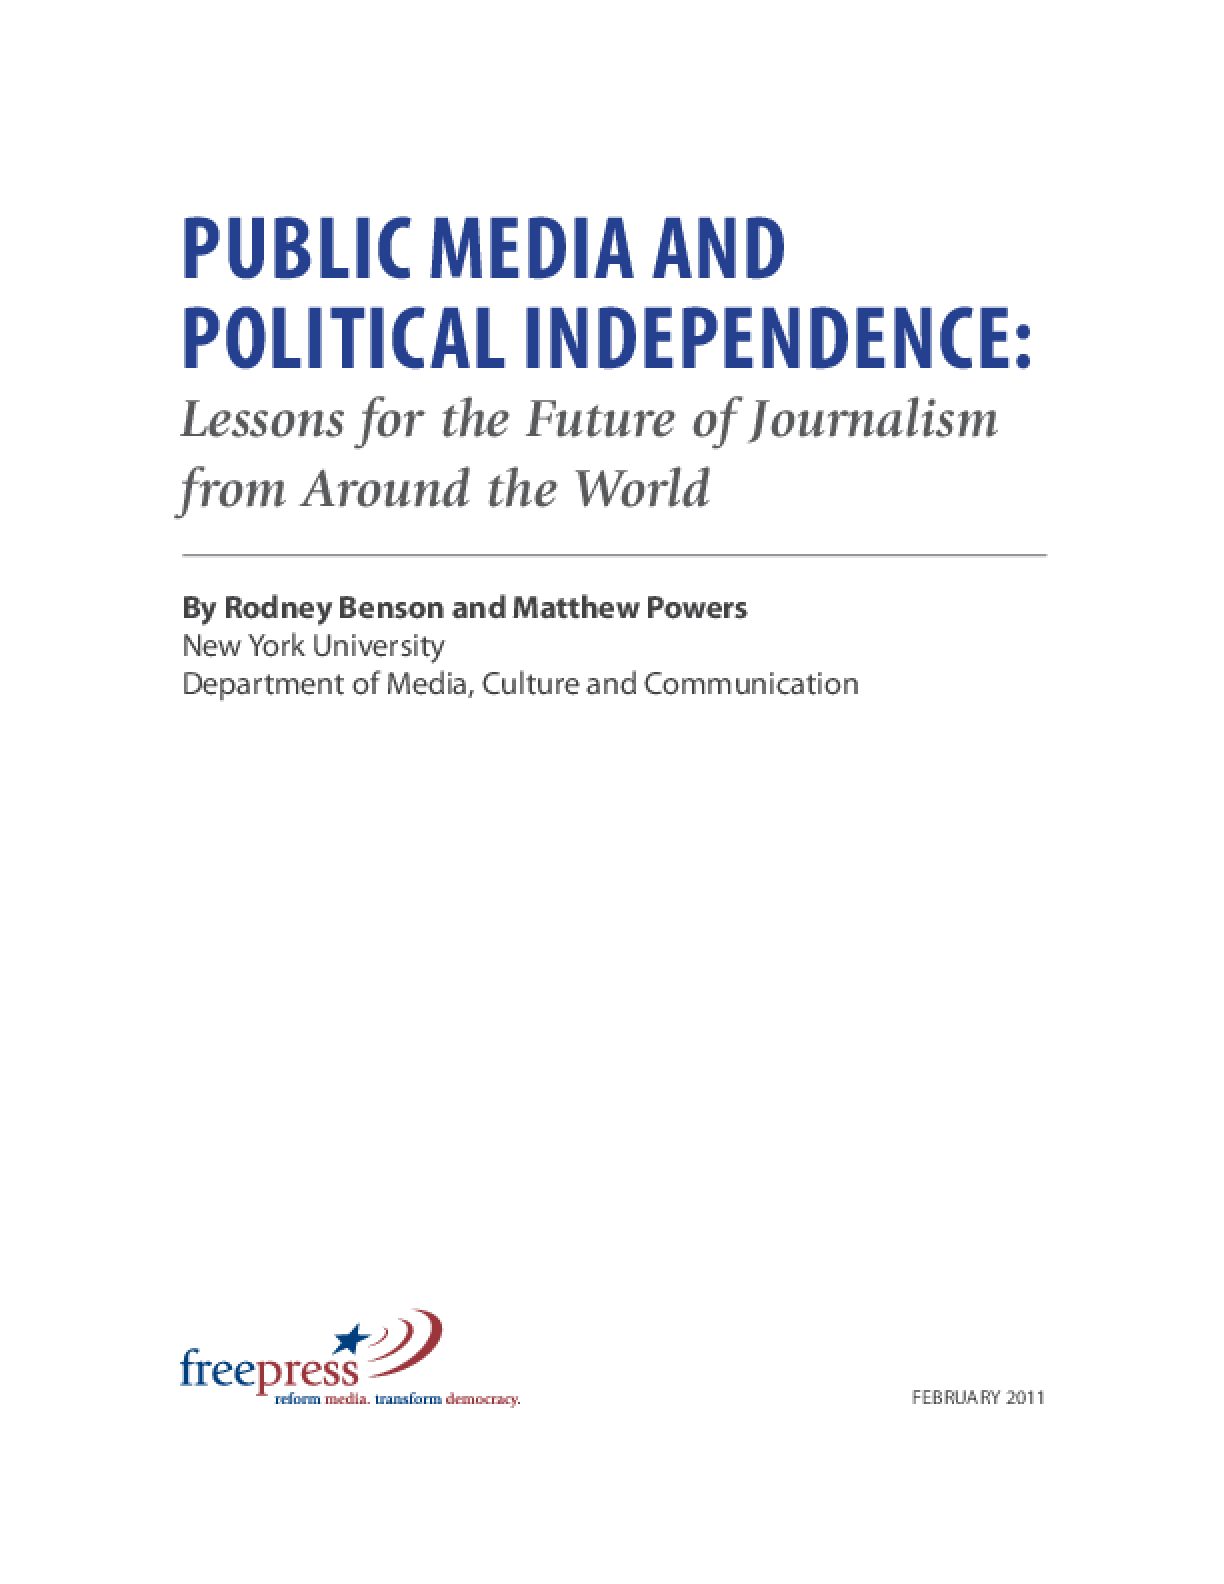 Public Media and Political Independence: Lessons for the Future of Journalism From Around the World